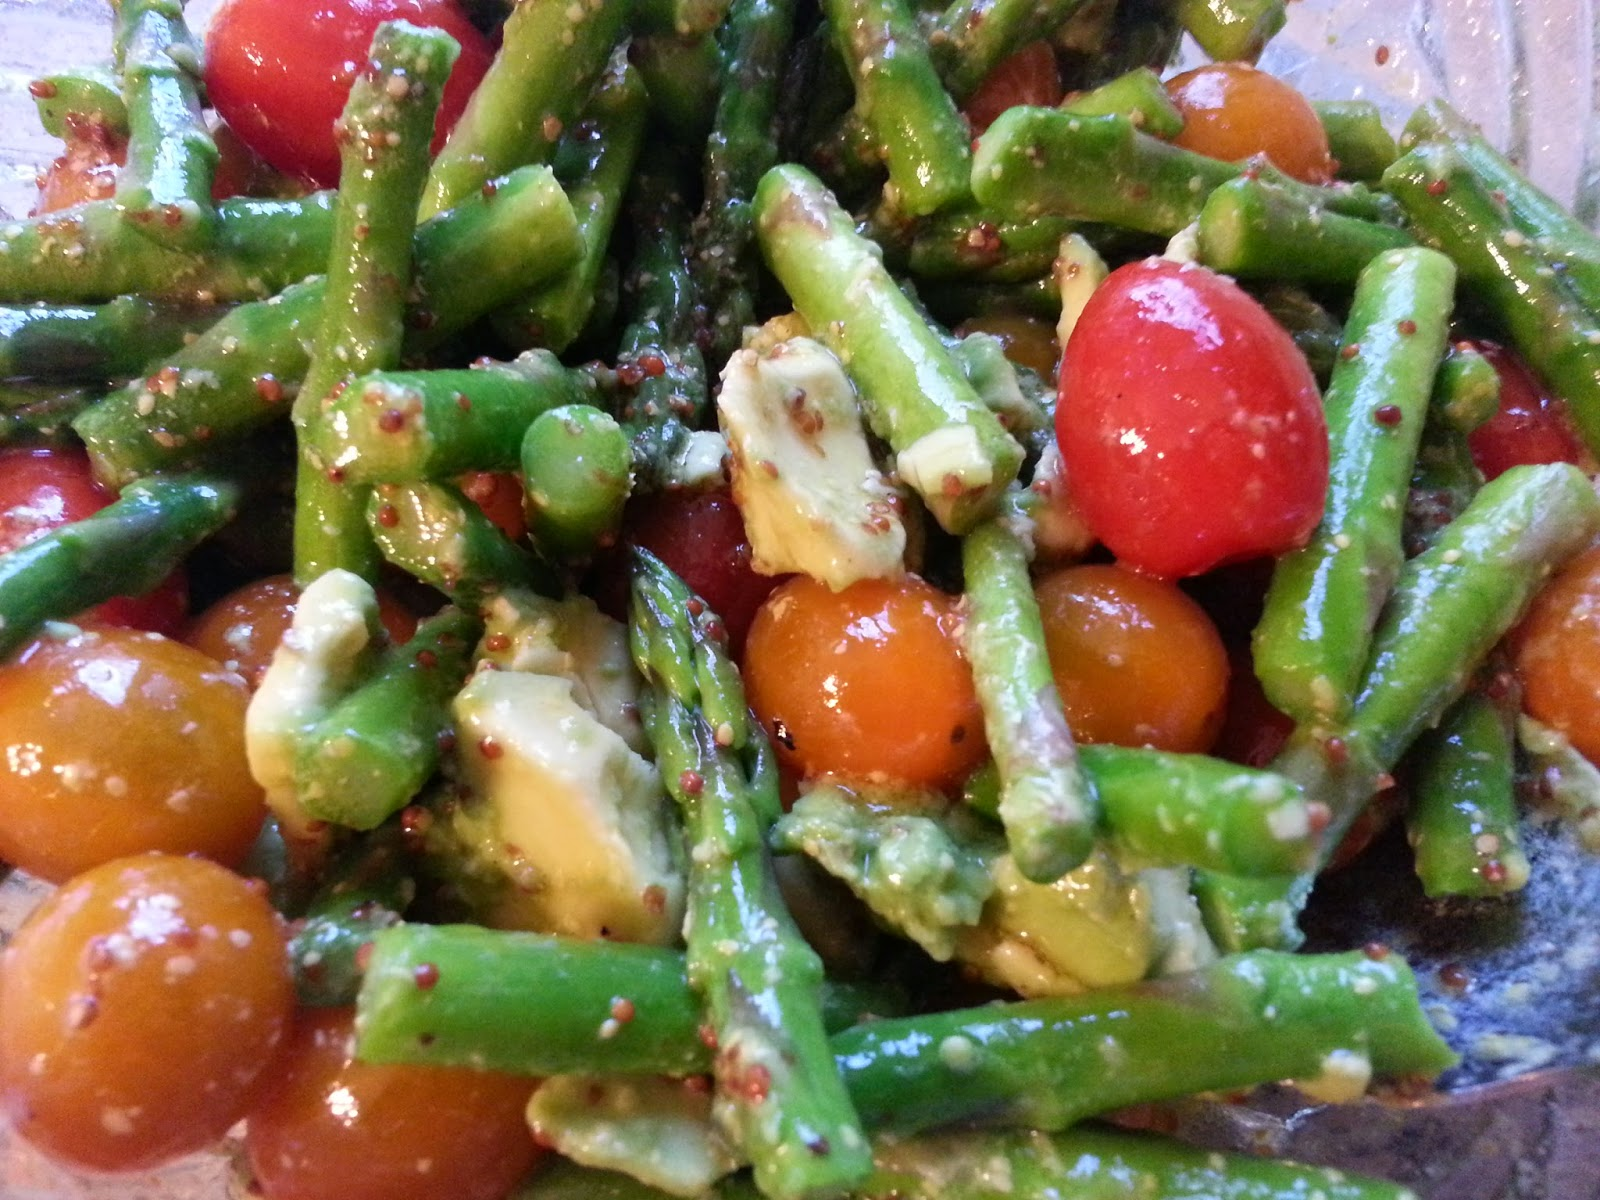 ... Miles North of Nowhere?: Asparagus, Tomato, and Avocado Salad